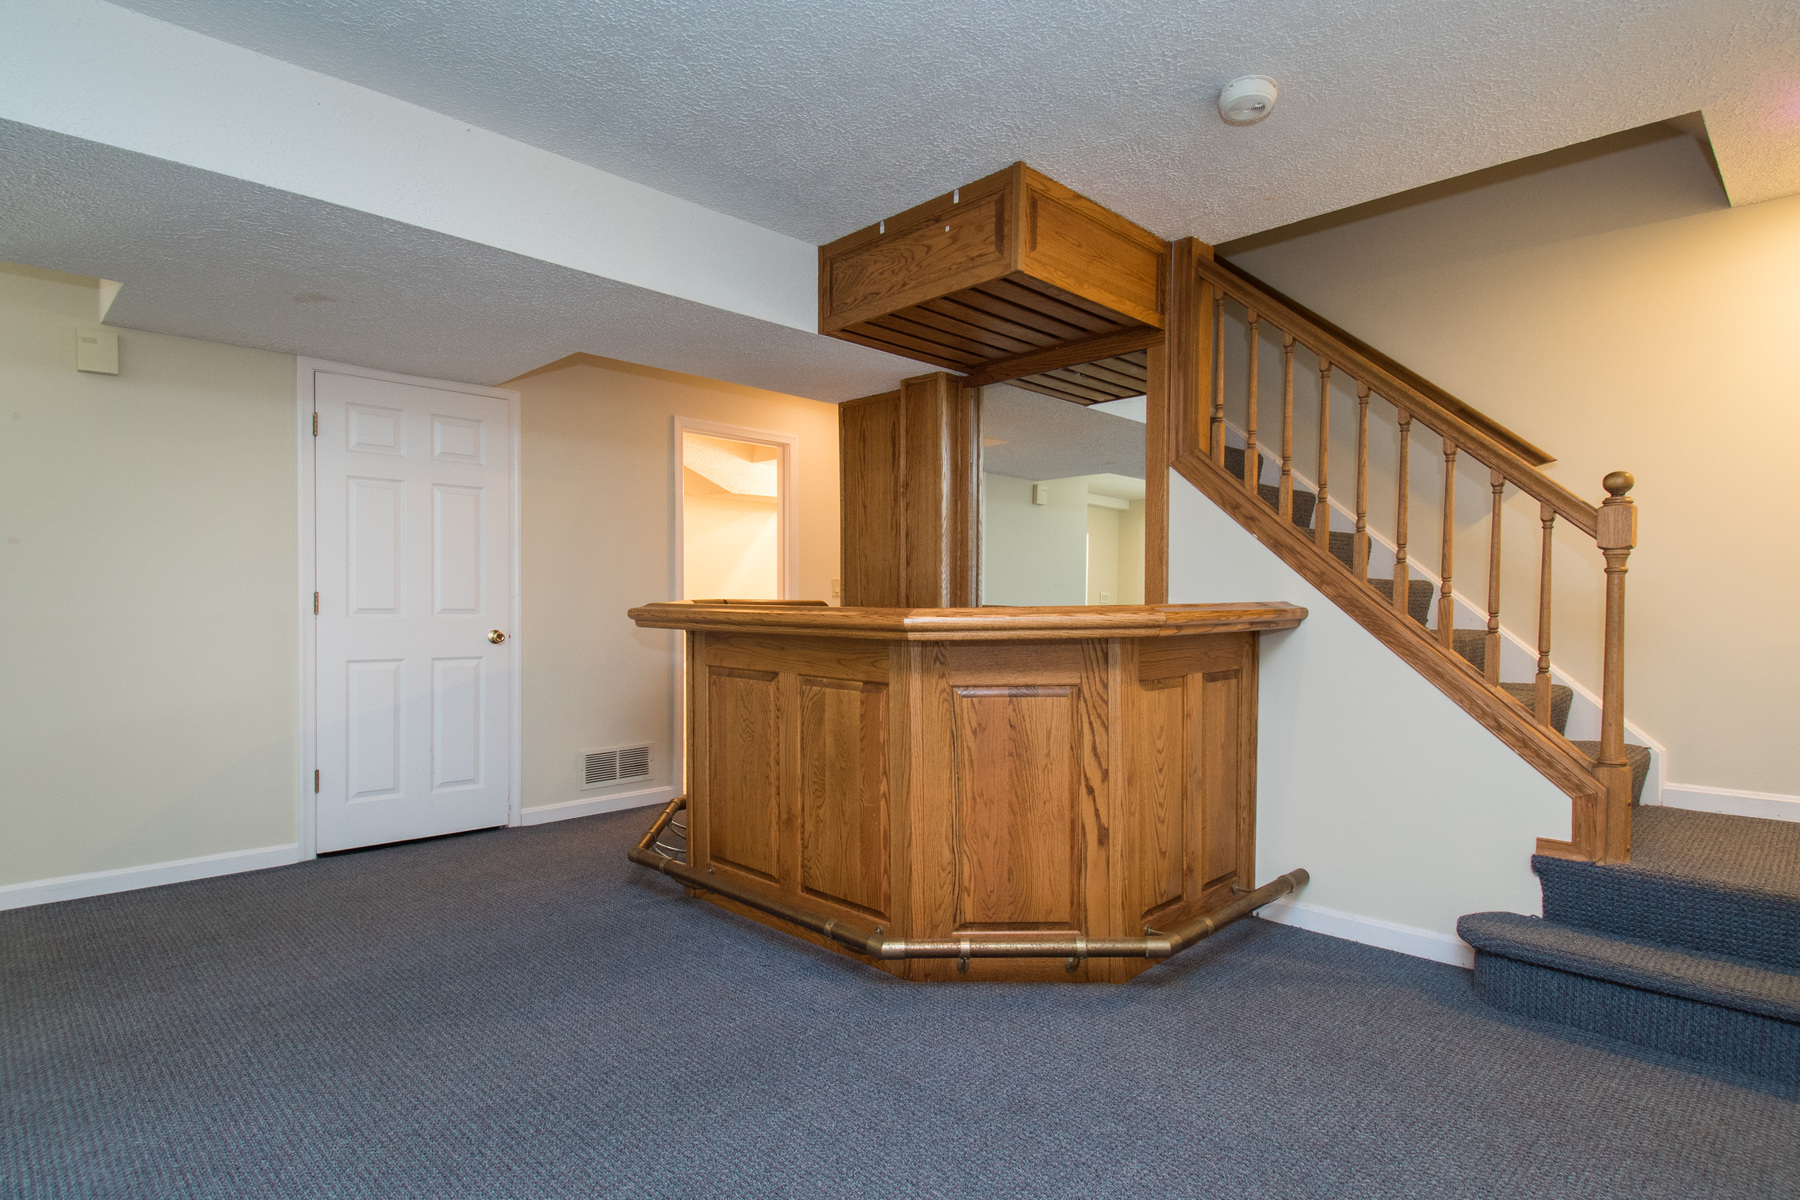 Additional photo for property listing at 576 Stocketts Run Road, Davidsonville 576 Stocketts Run Rd Davidsonville, Maryland 21035 United States